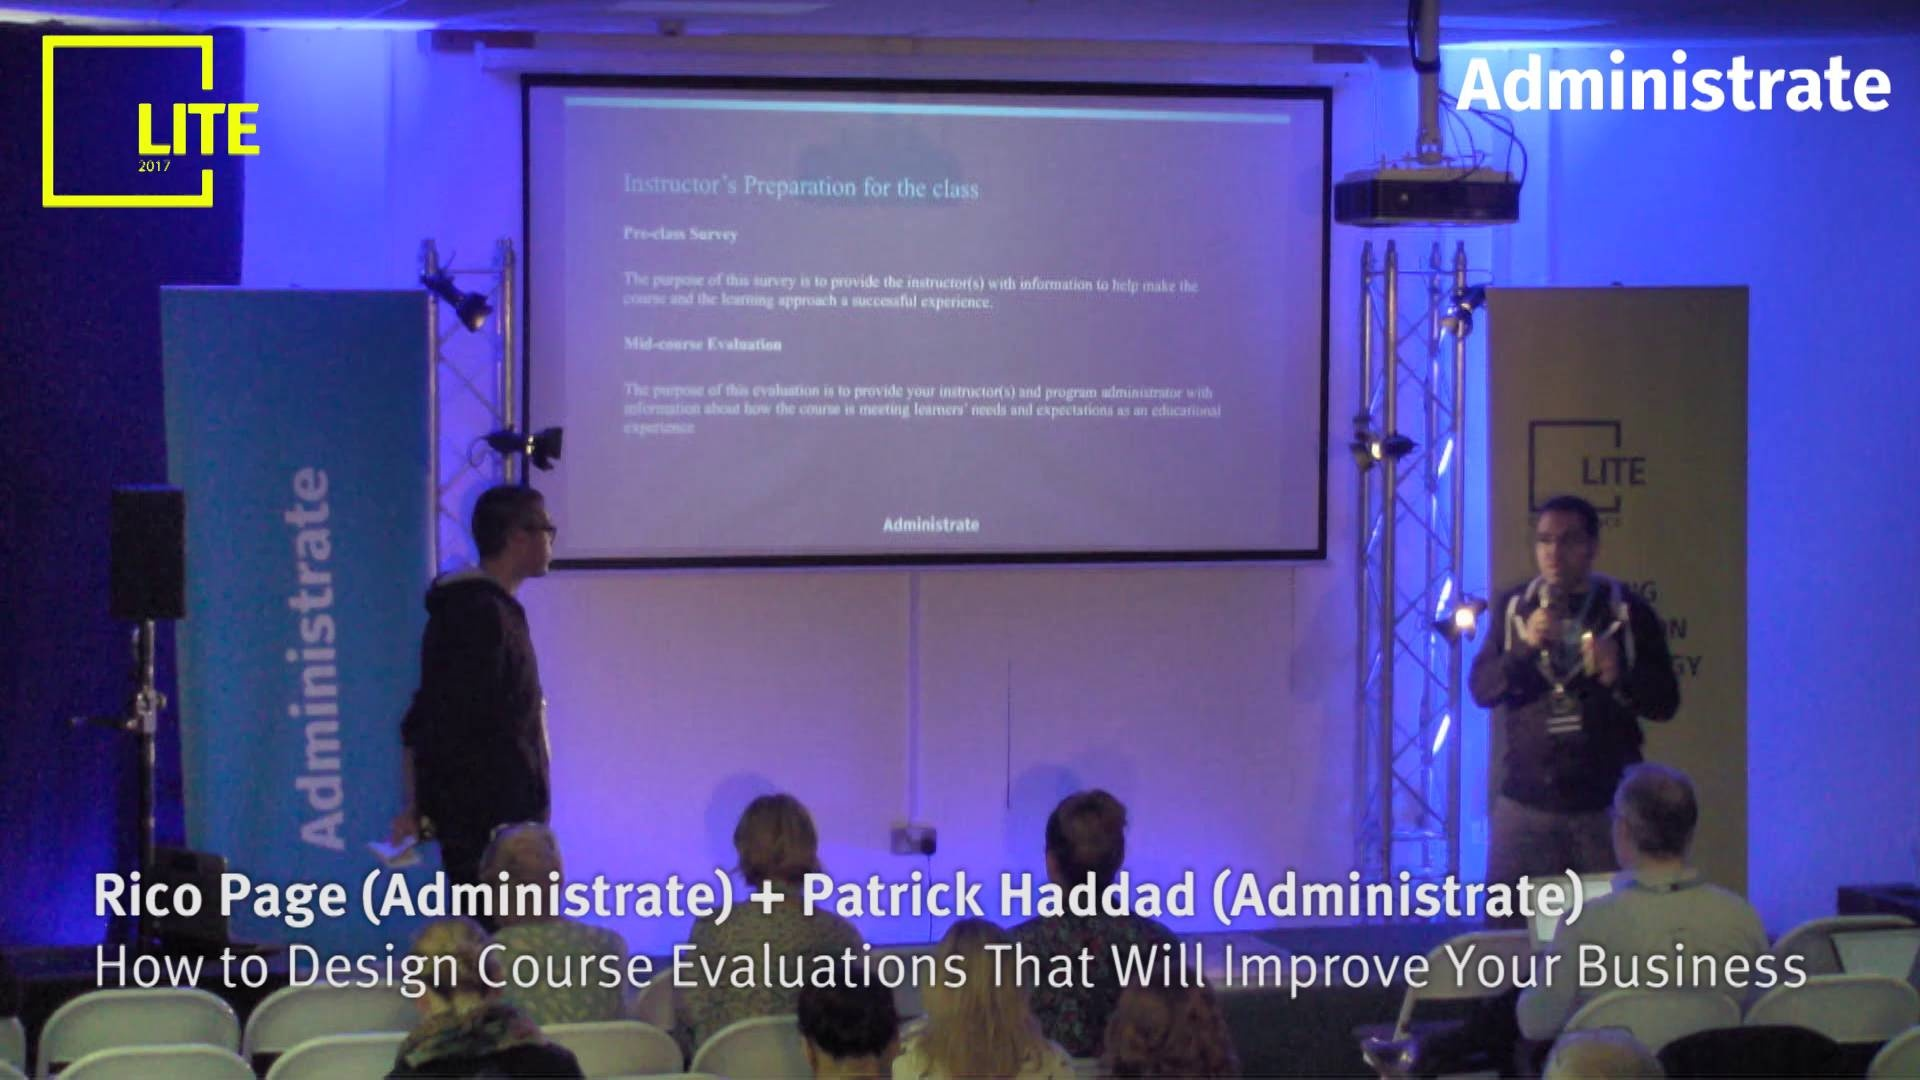 How to Design Course Evaluations That Will Improve Your Business [Rico Page & Patrick Haddad]